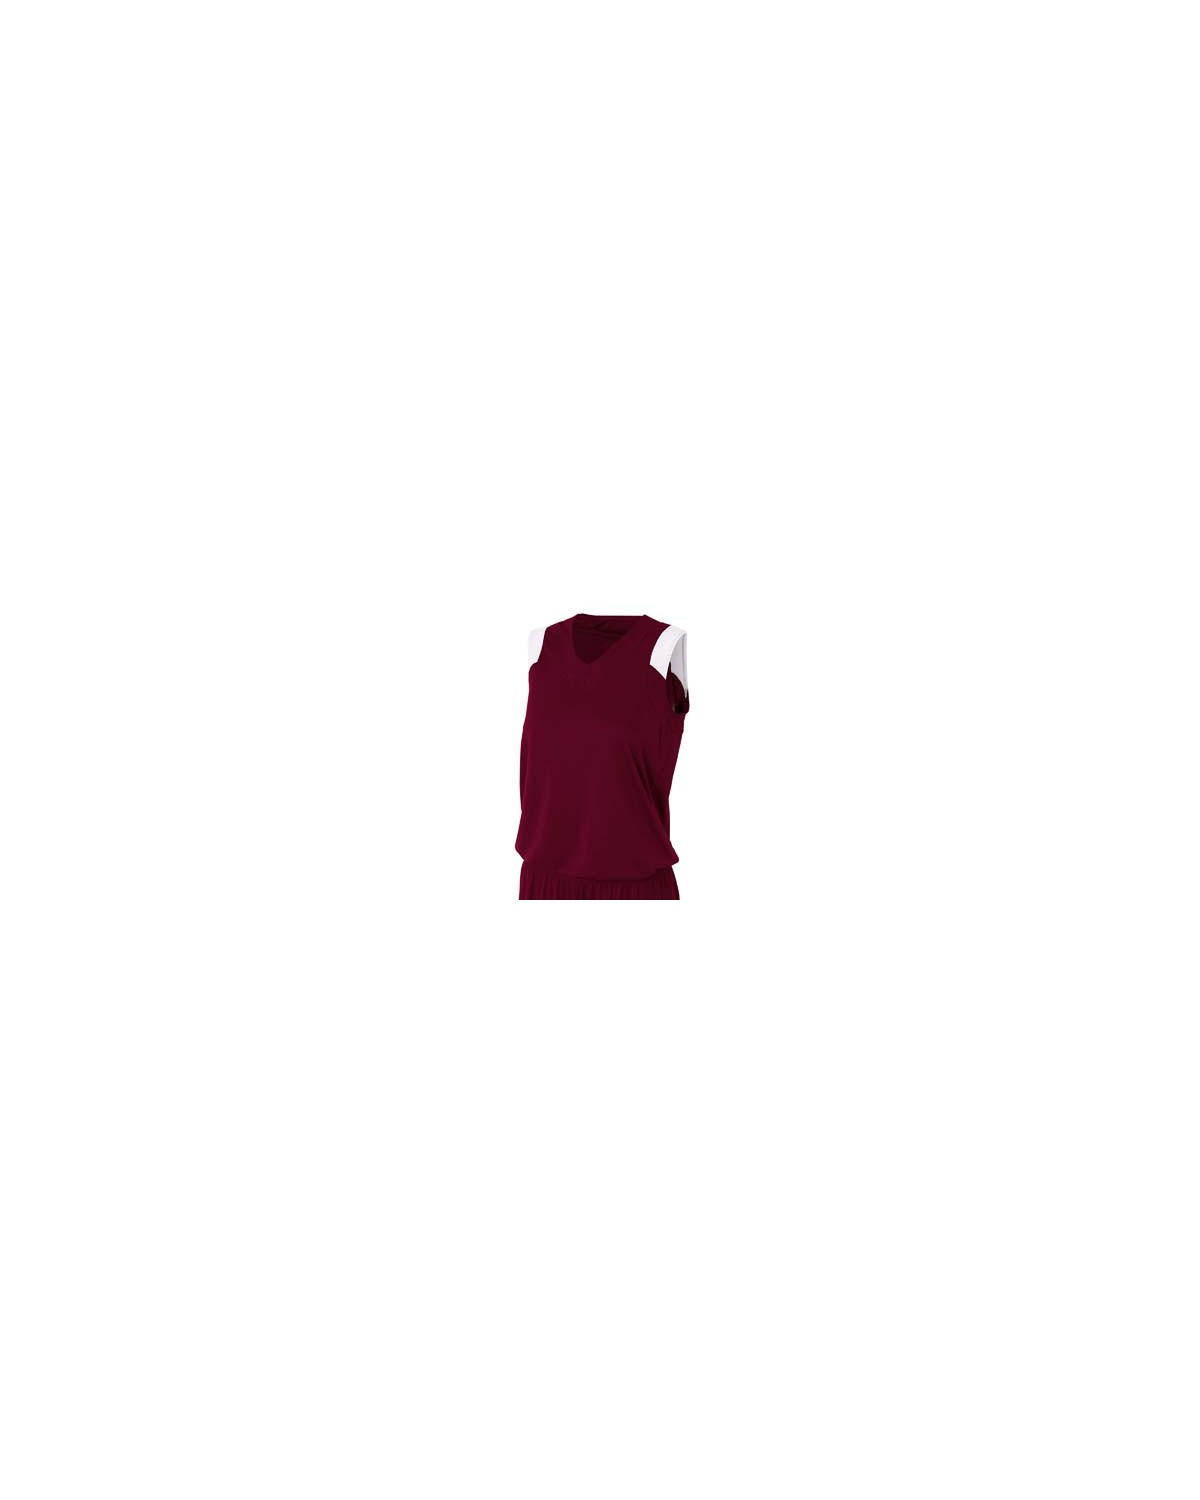 NW2340 A4 Drop Ship MAROON/WHITE